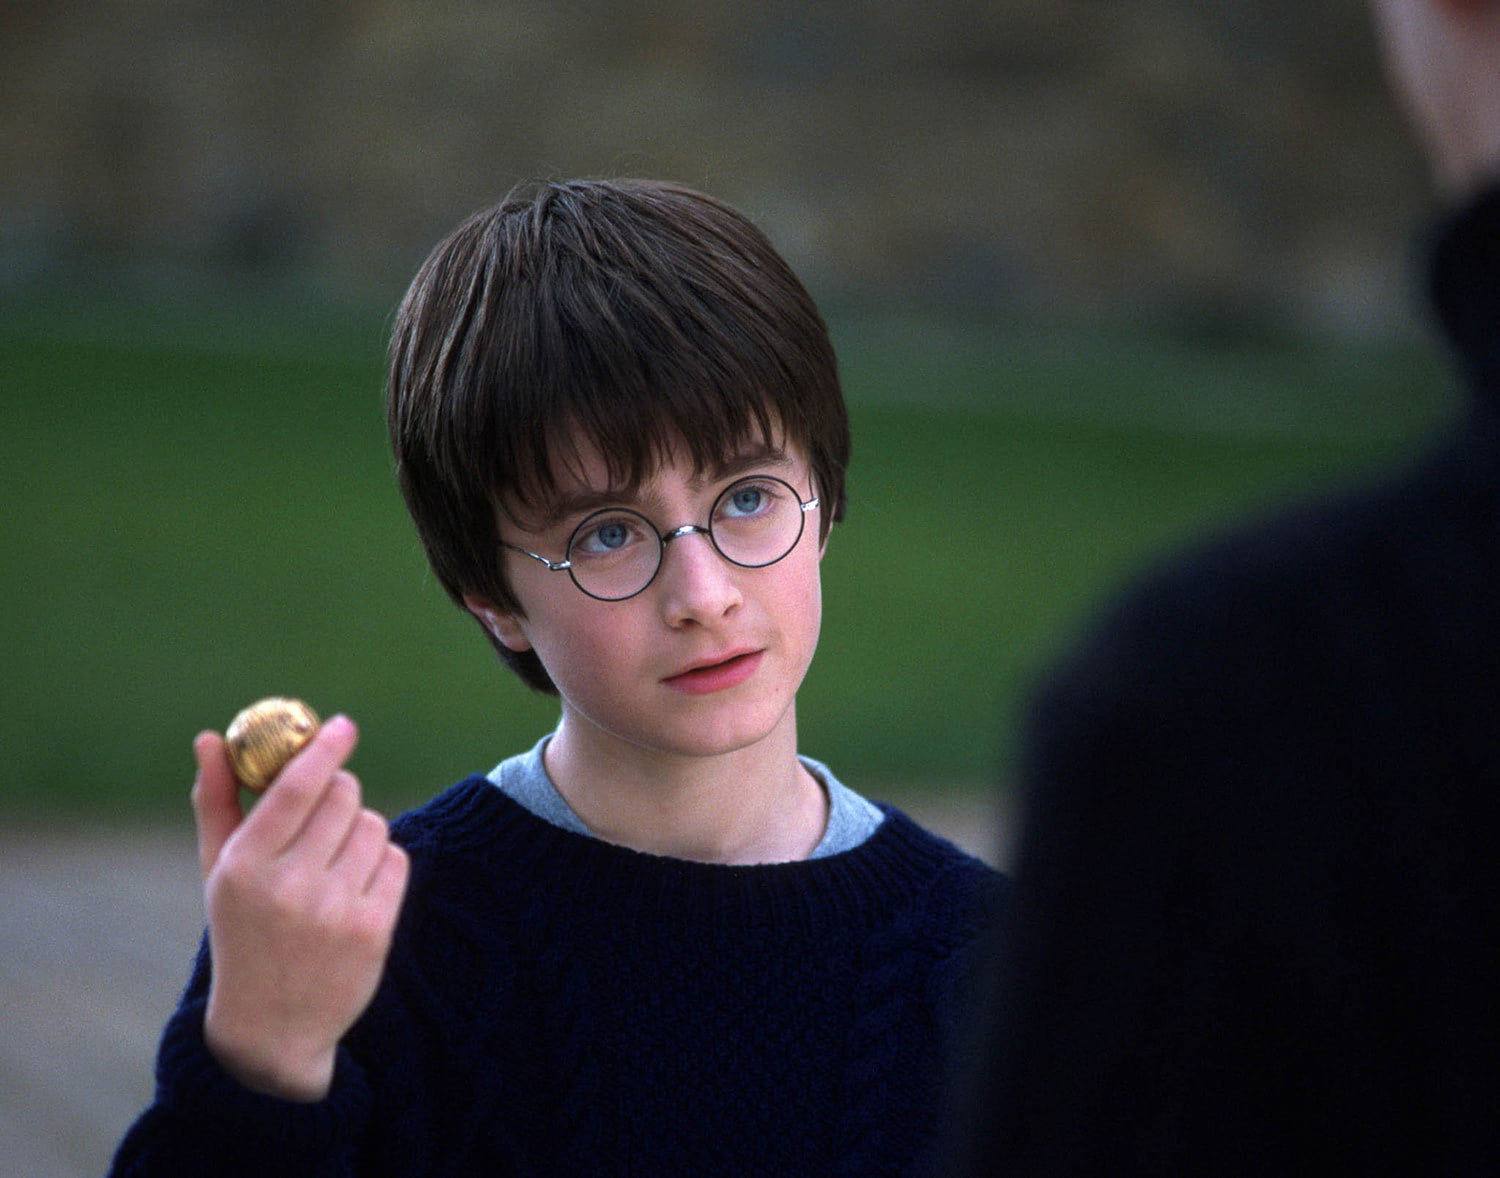 Harry with the Golden Snitch